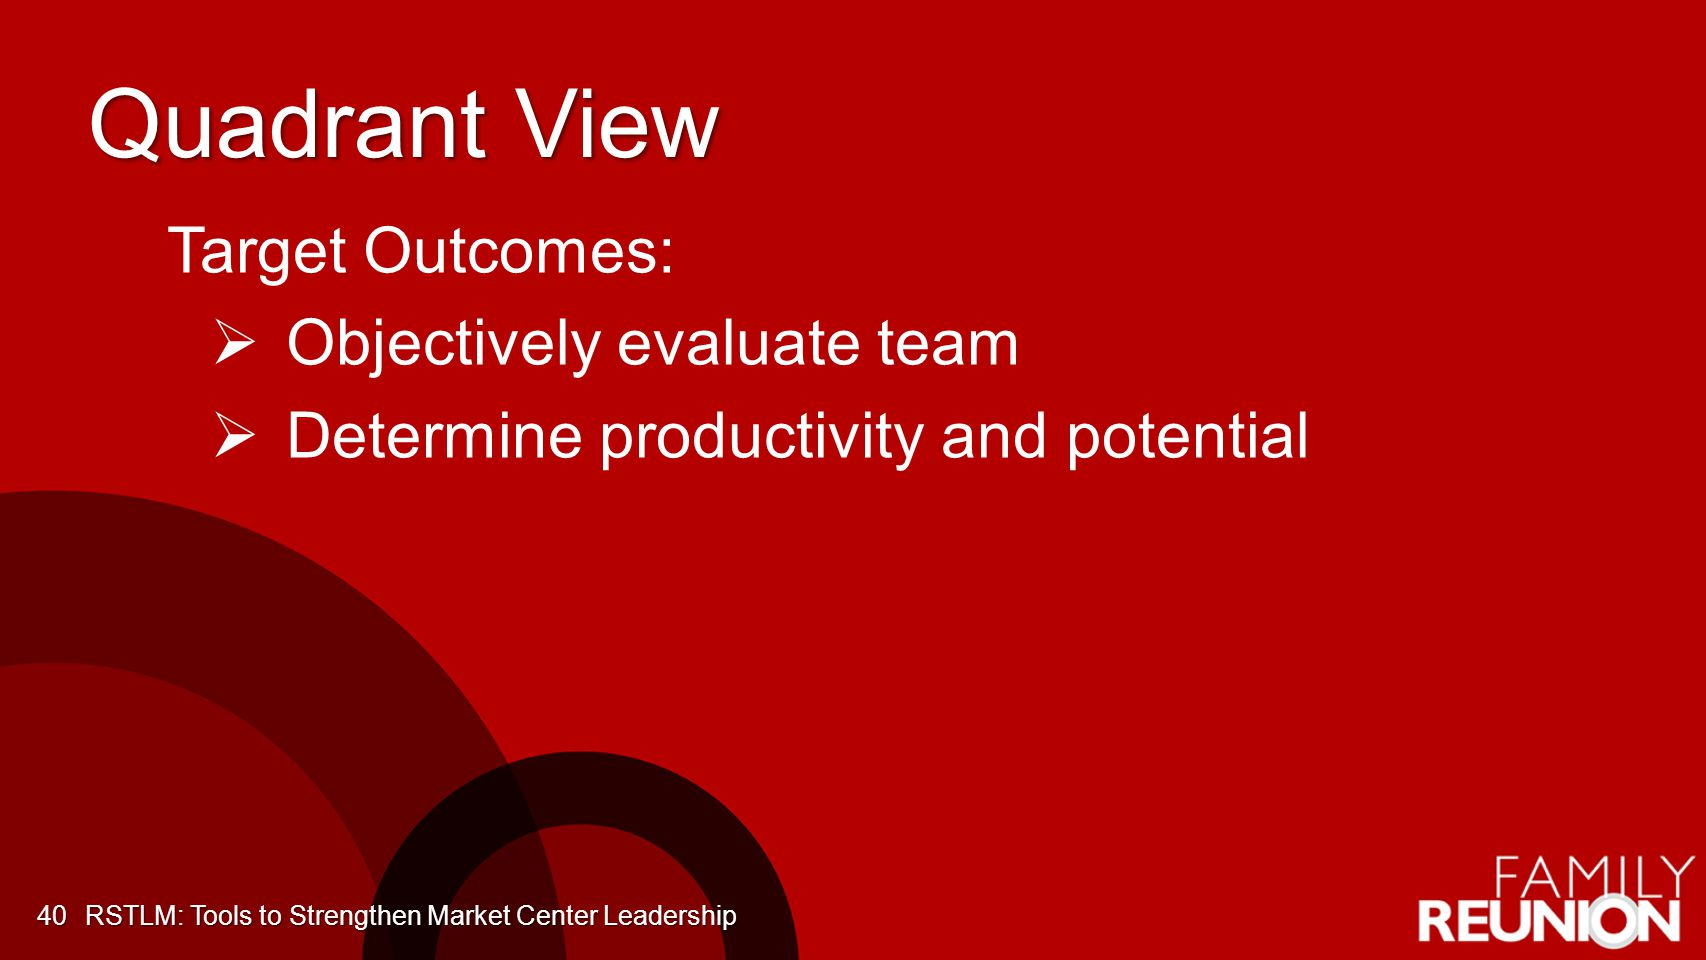 Quadrant View Target Outcomes: Objectively evaluate team